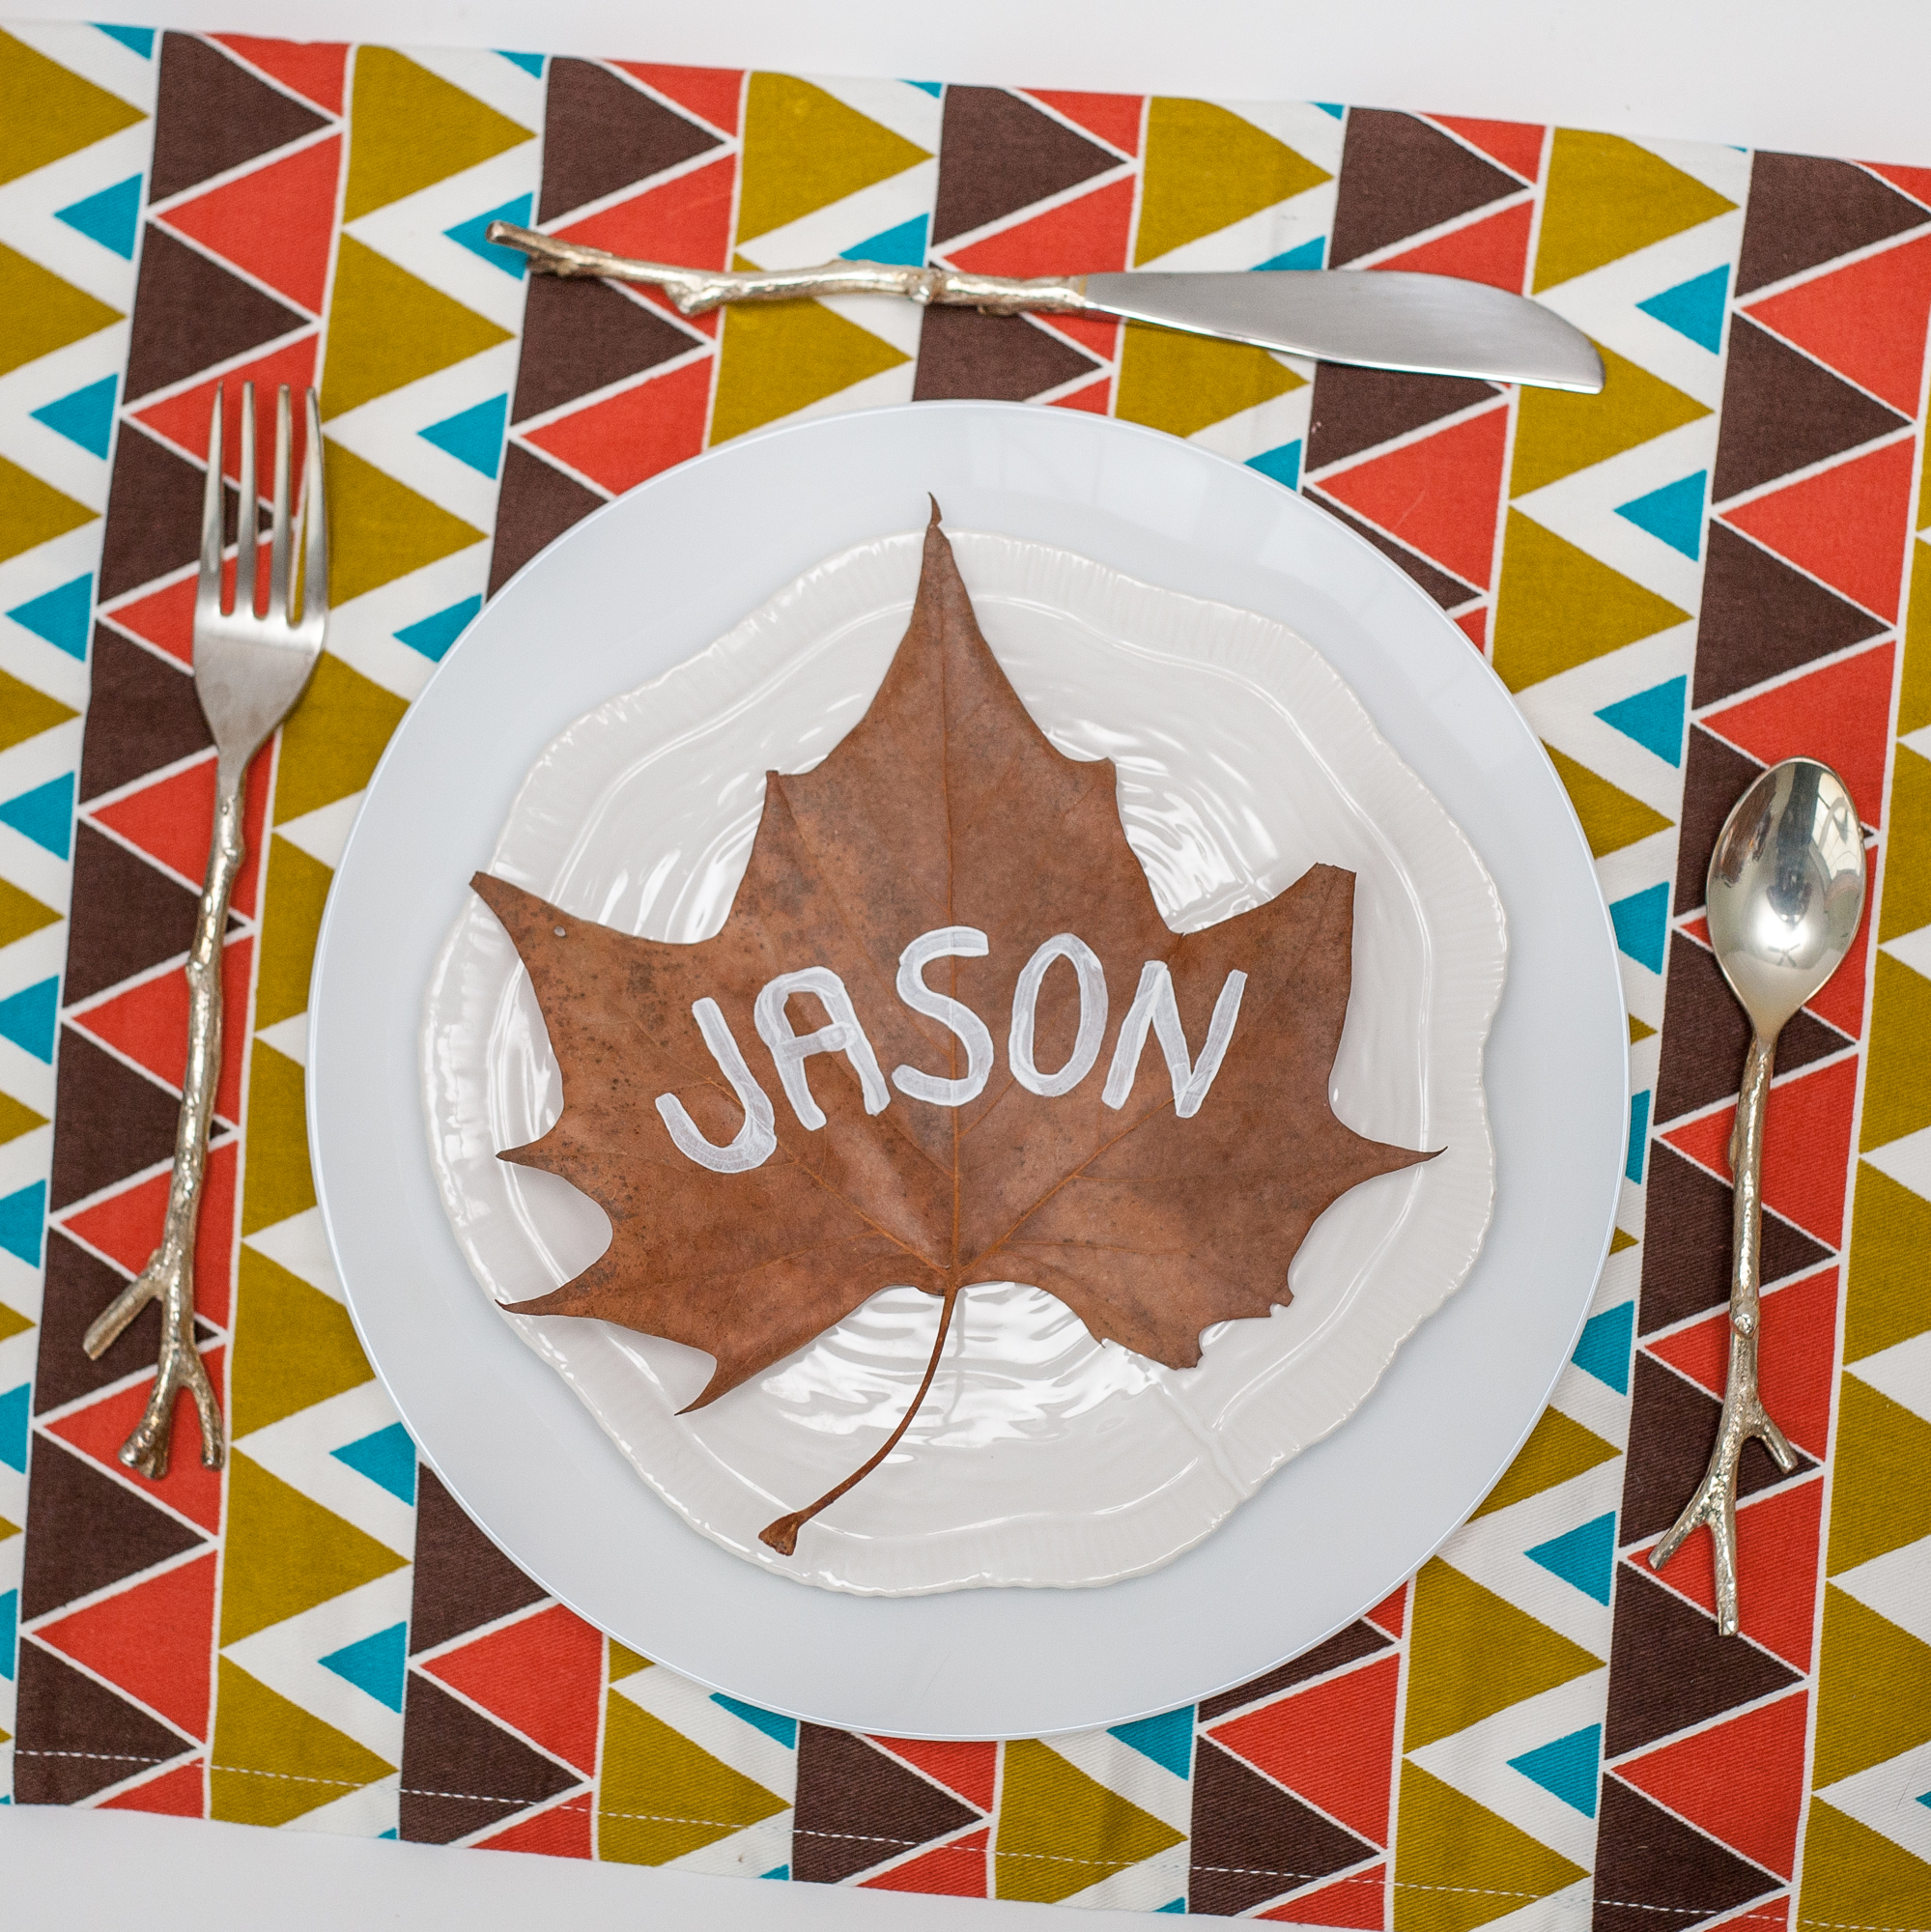 I happen to live next to a bike trail that is covered in fall leaves. It was easy to scavenge for the perfect, extra large leaf! I found that the drier the leaf, the more prone it was to stay flat.  MODIFICATION: If you don't trust your freehand paint skills, I would suggest getting scrapbook letters, arranging them on the leaf, then spray painting to be a reverse stencil. Actually, now that I'm typing it, I'd love to see it as a metallic gold leaf with show-through text!